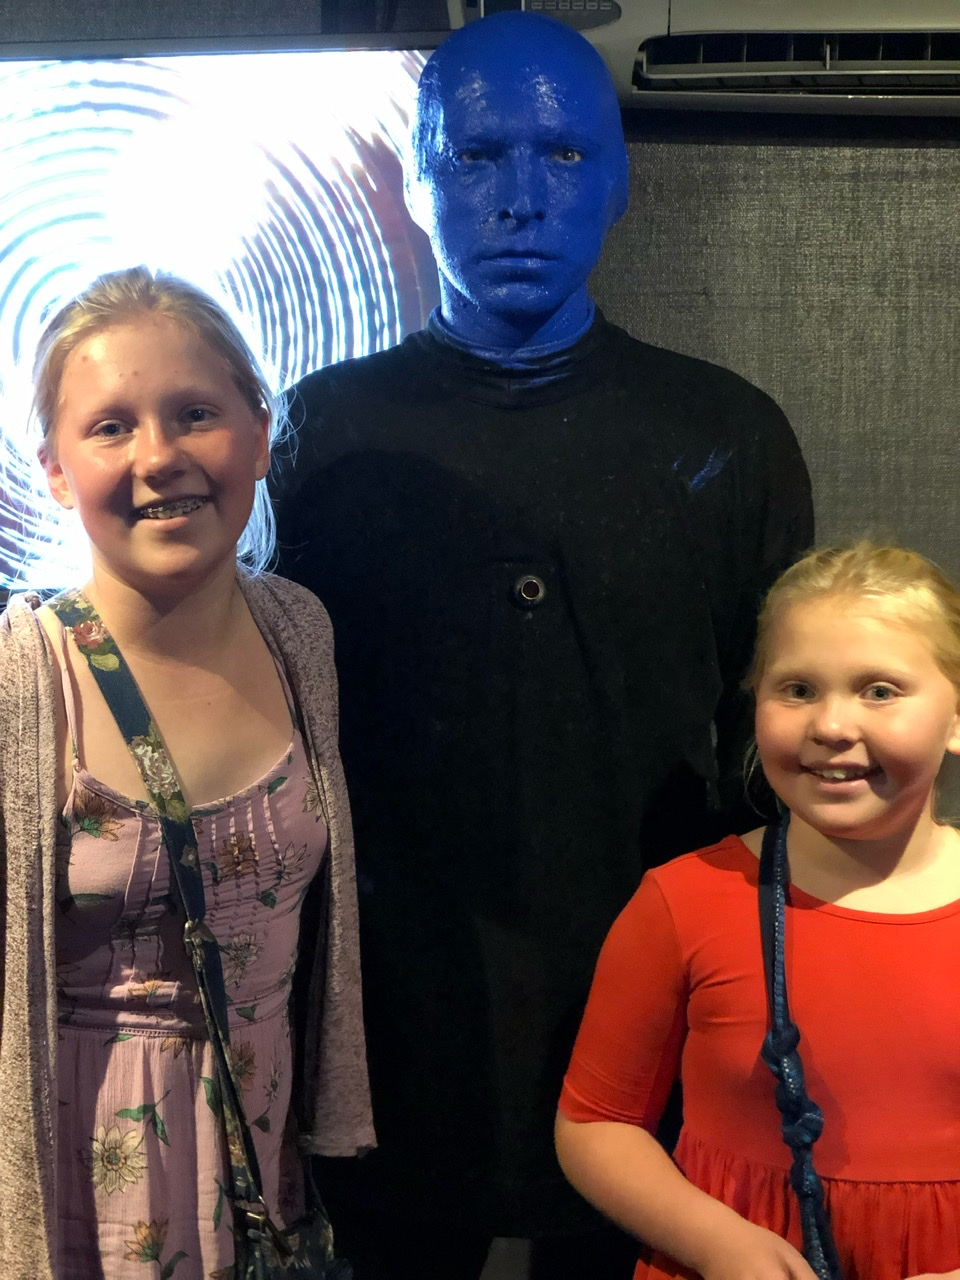 with a blueman